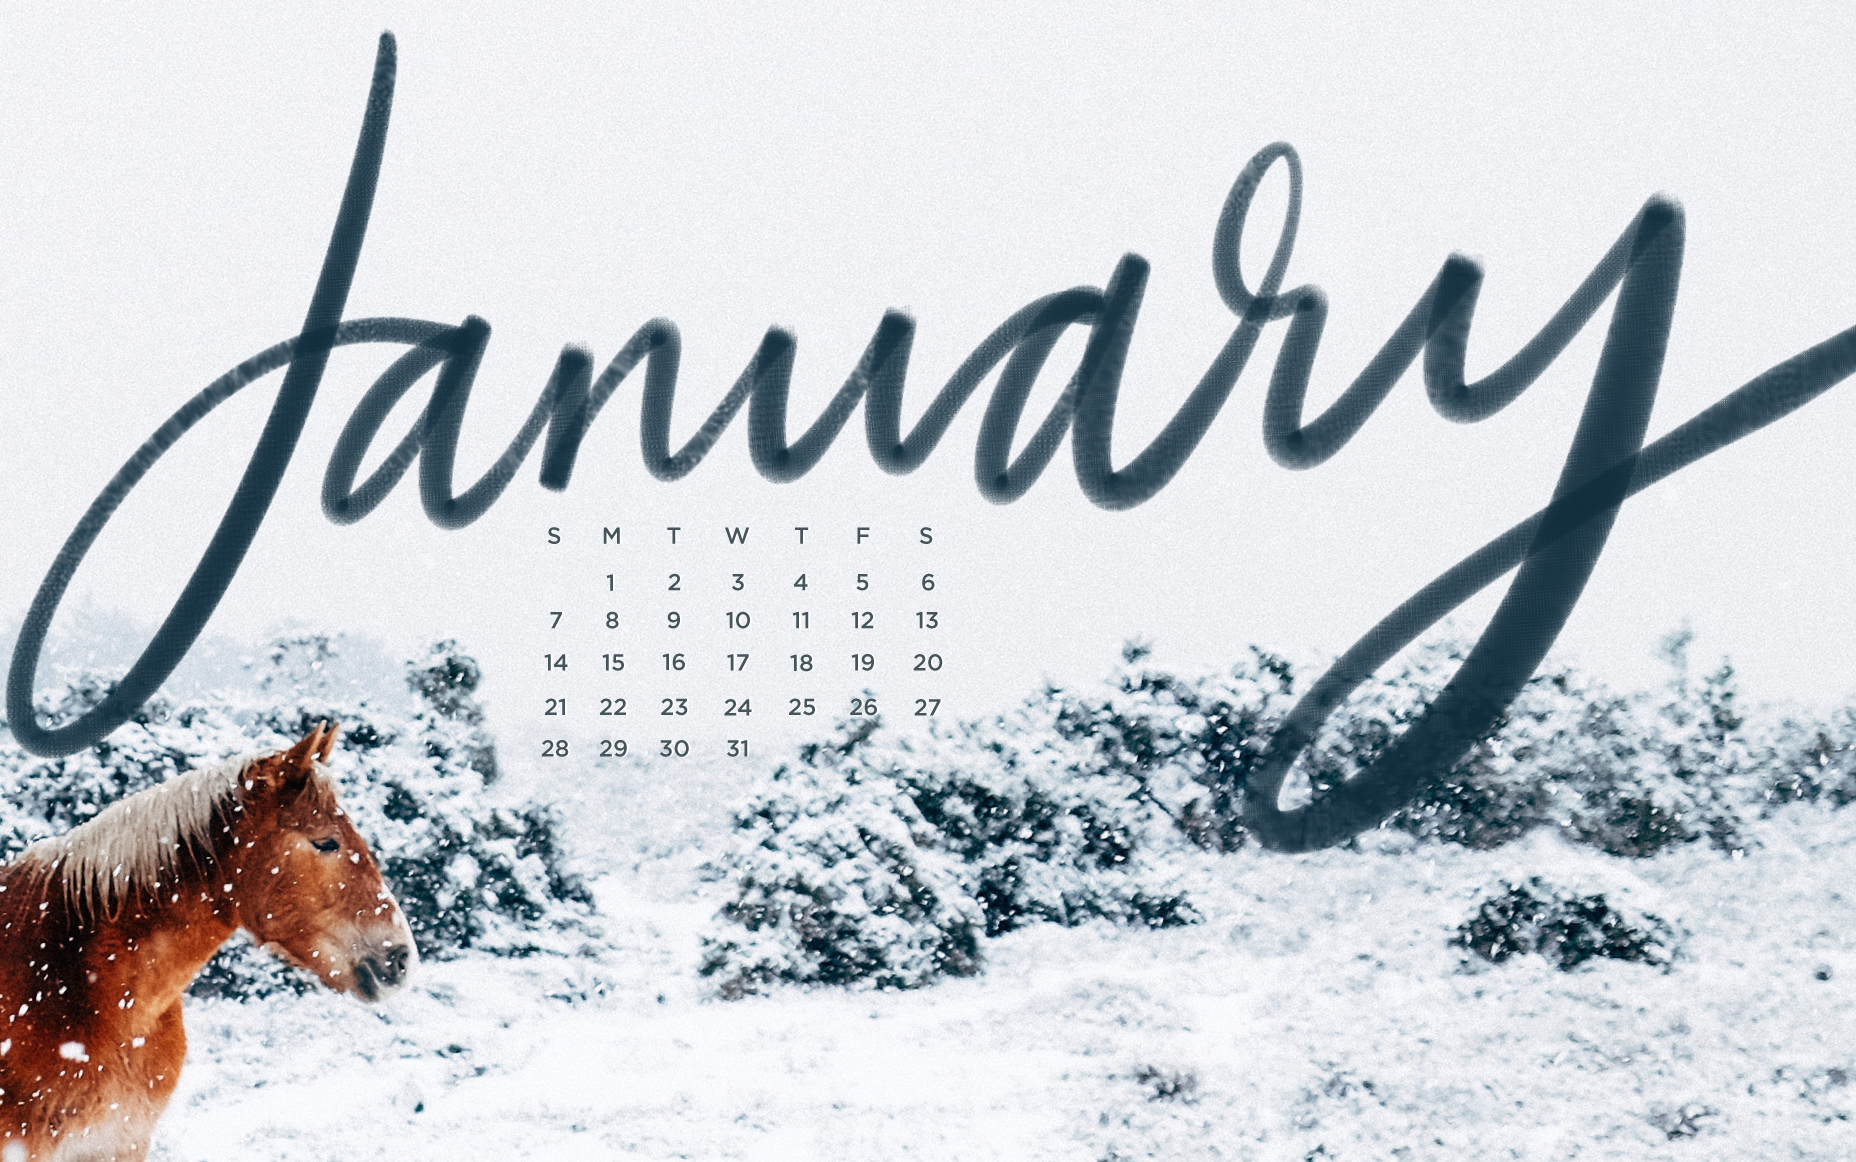 Downloadable Tech Backgrounds for January The 1856x1162